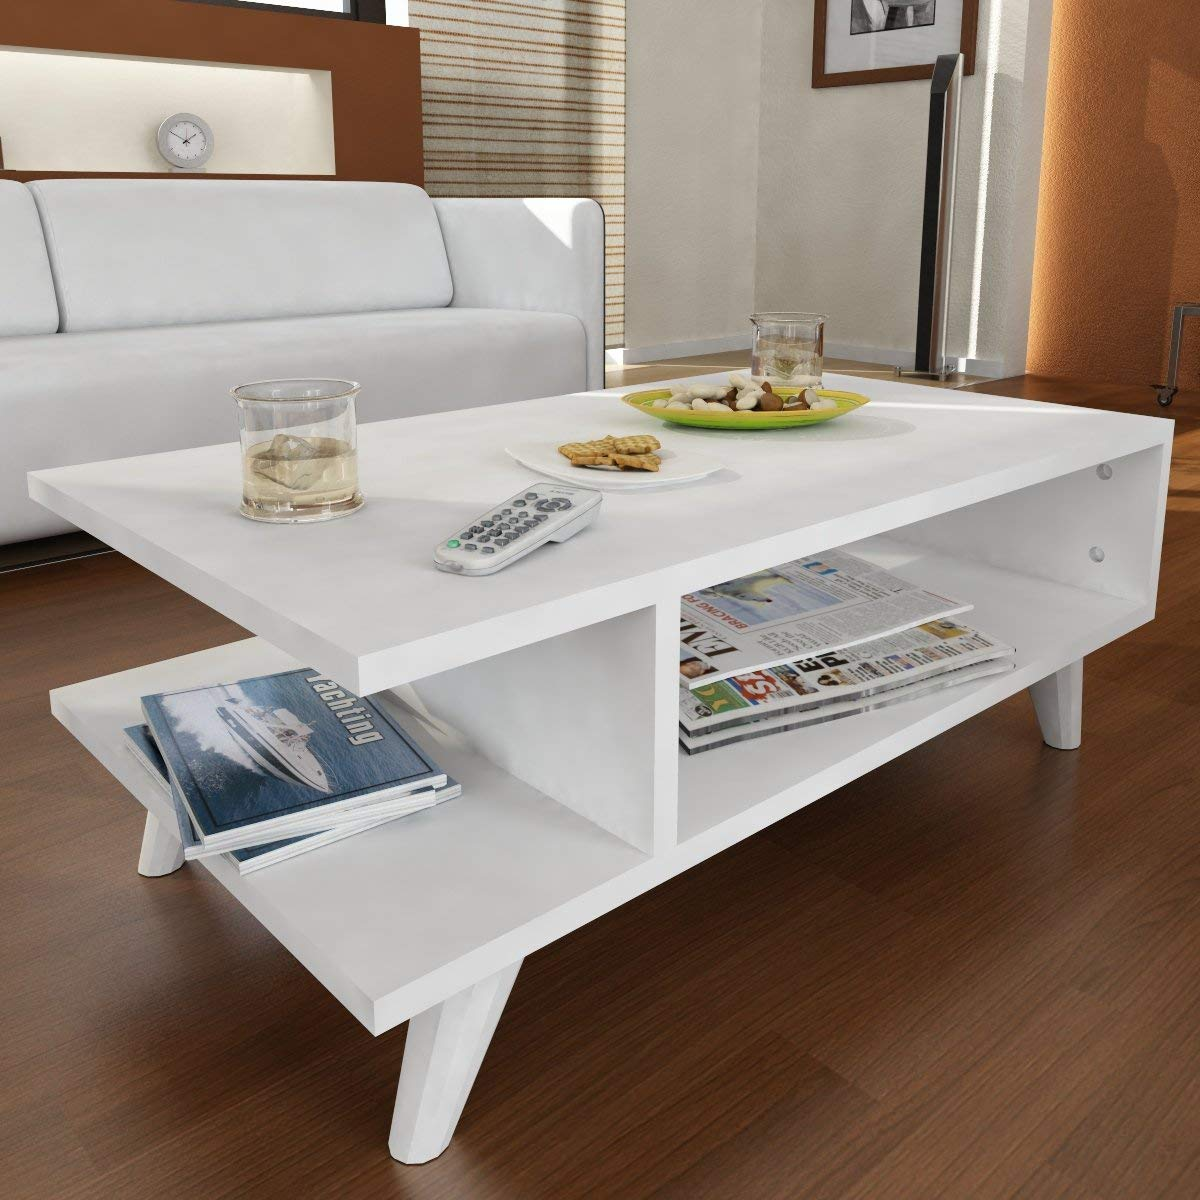 LaModaHome Modern Style Coffee Table - White Modern Coffee Table Wooden Resistant Table - Cocktail Table with Storage - Best Choice For Quality - For Home, Office, Living Room and More